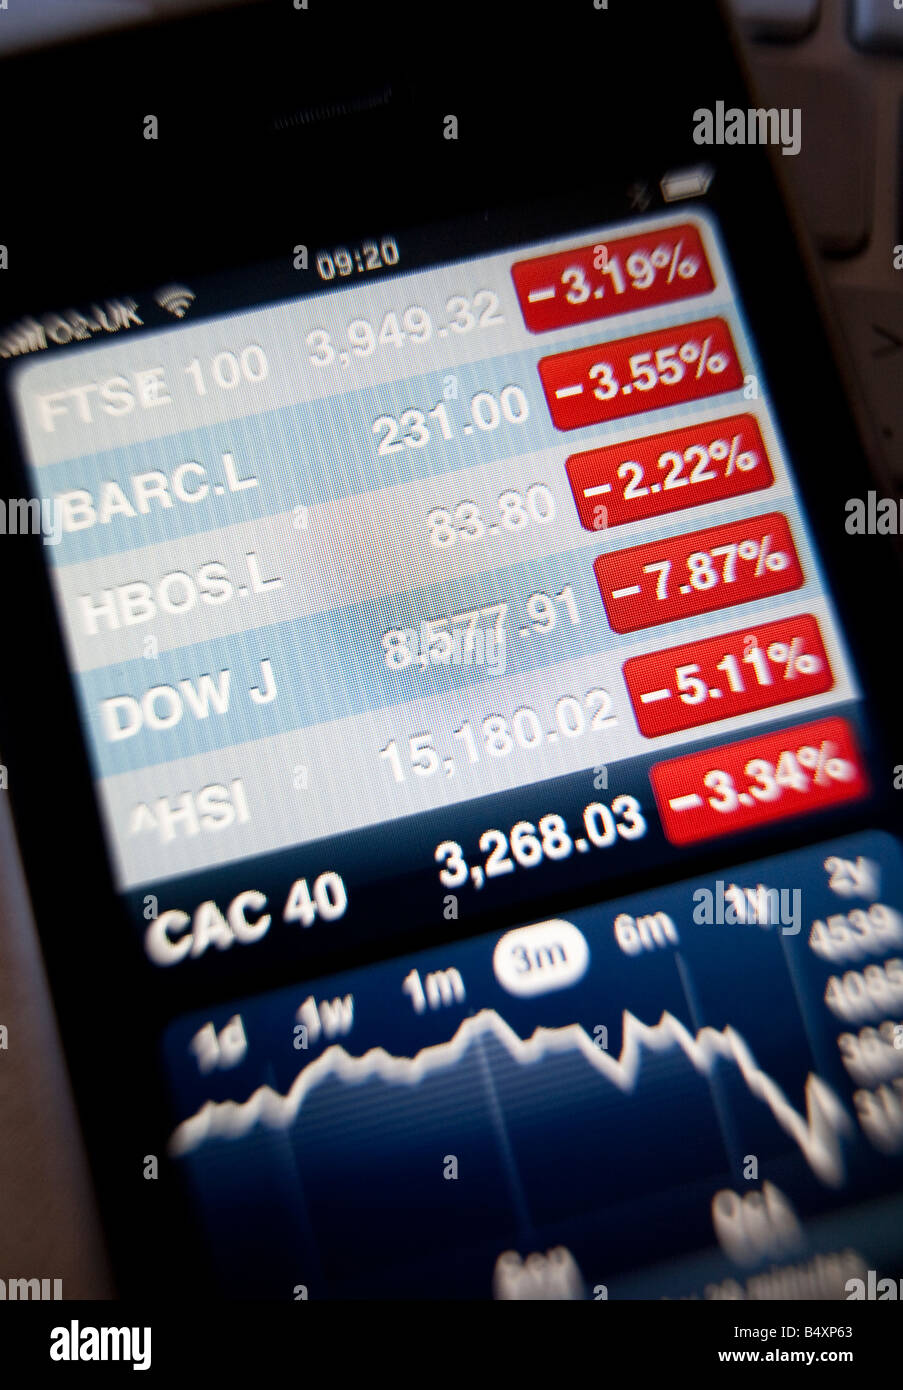 Stock markets shown in the red on an iPhone screen - Stock Image